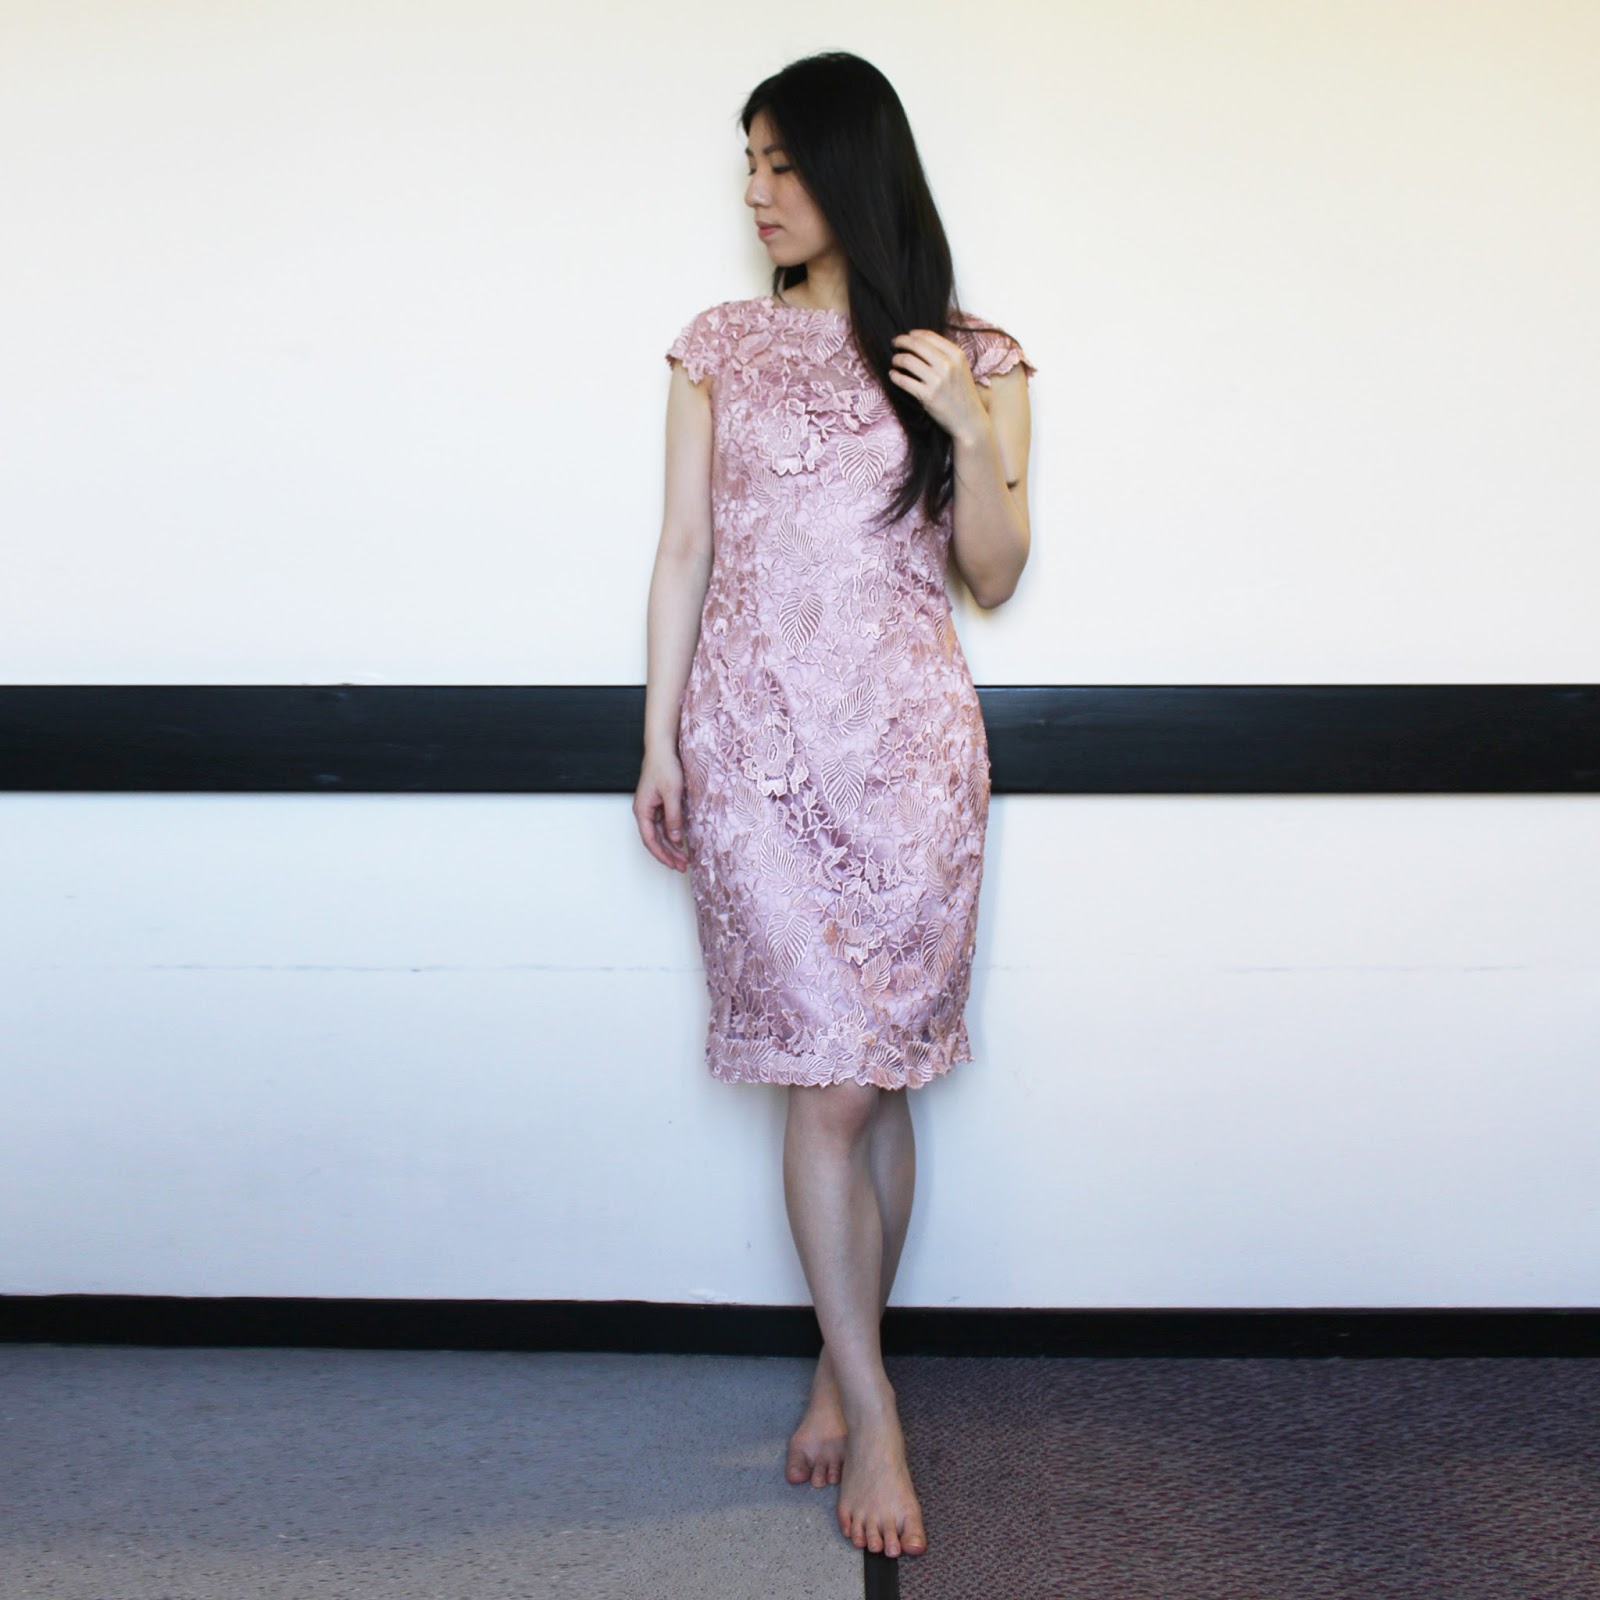 c56a30db752 fantail flo  Cutest Prom Dress Ever- JJsHouse Review